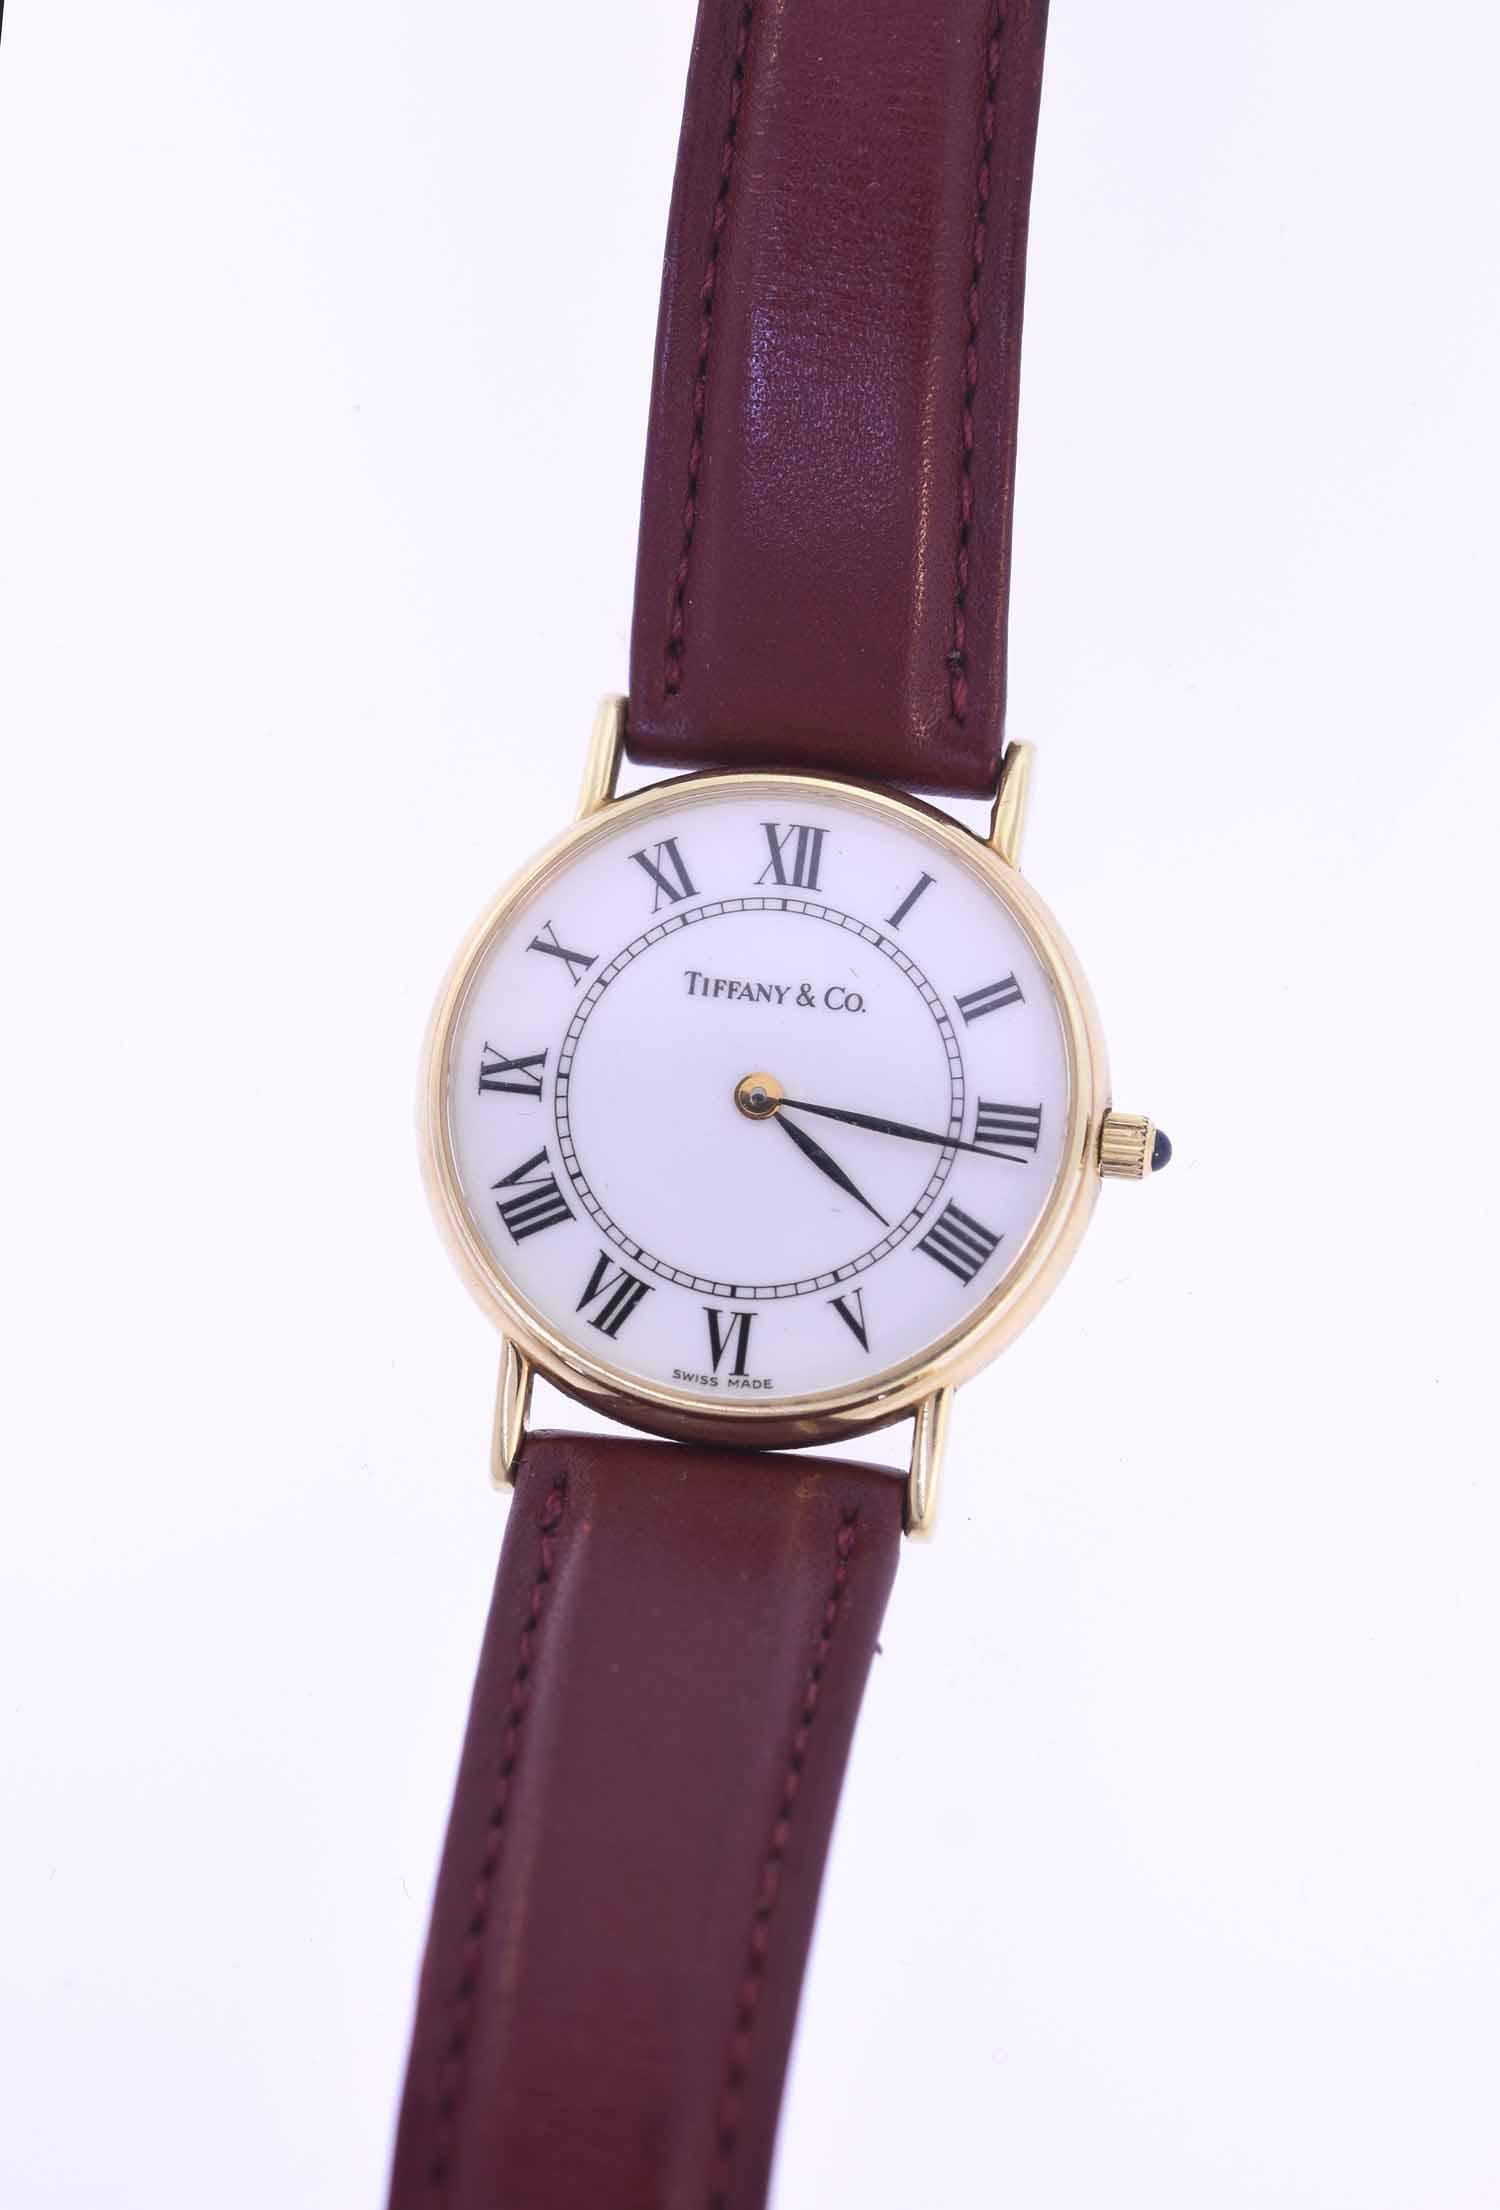 Men's 14K gold Tiffany and Co. wrist watch